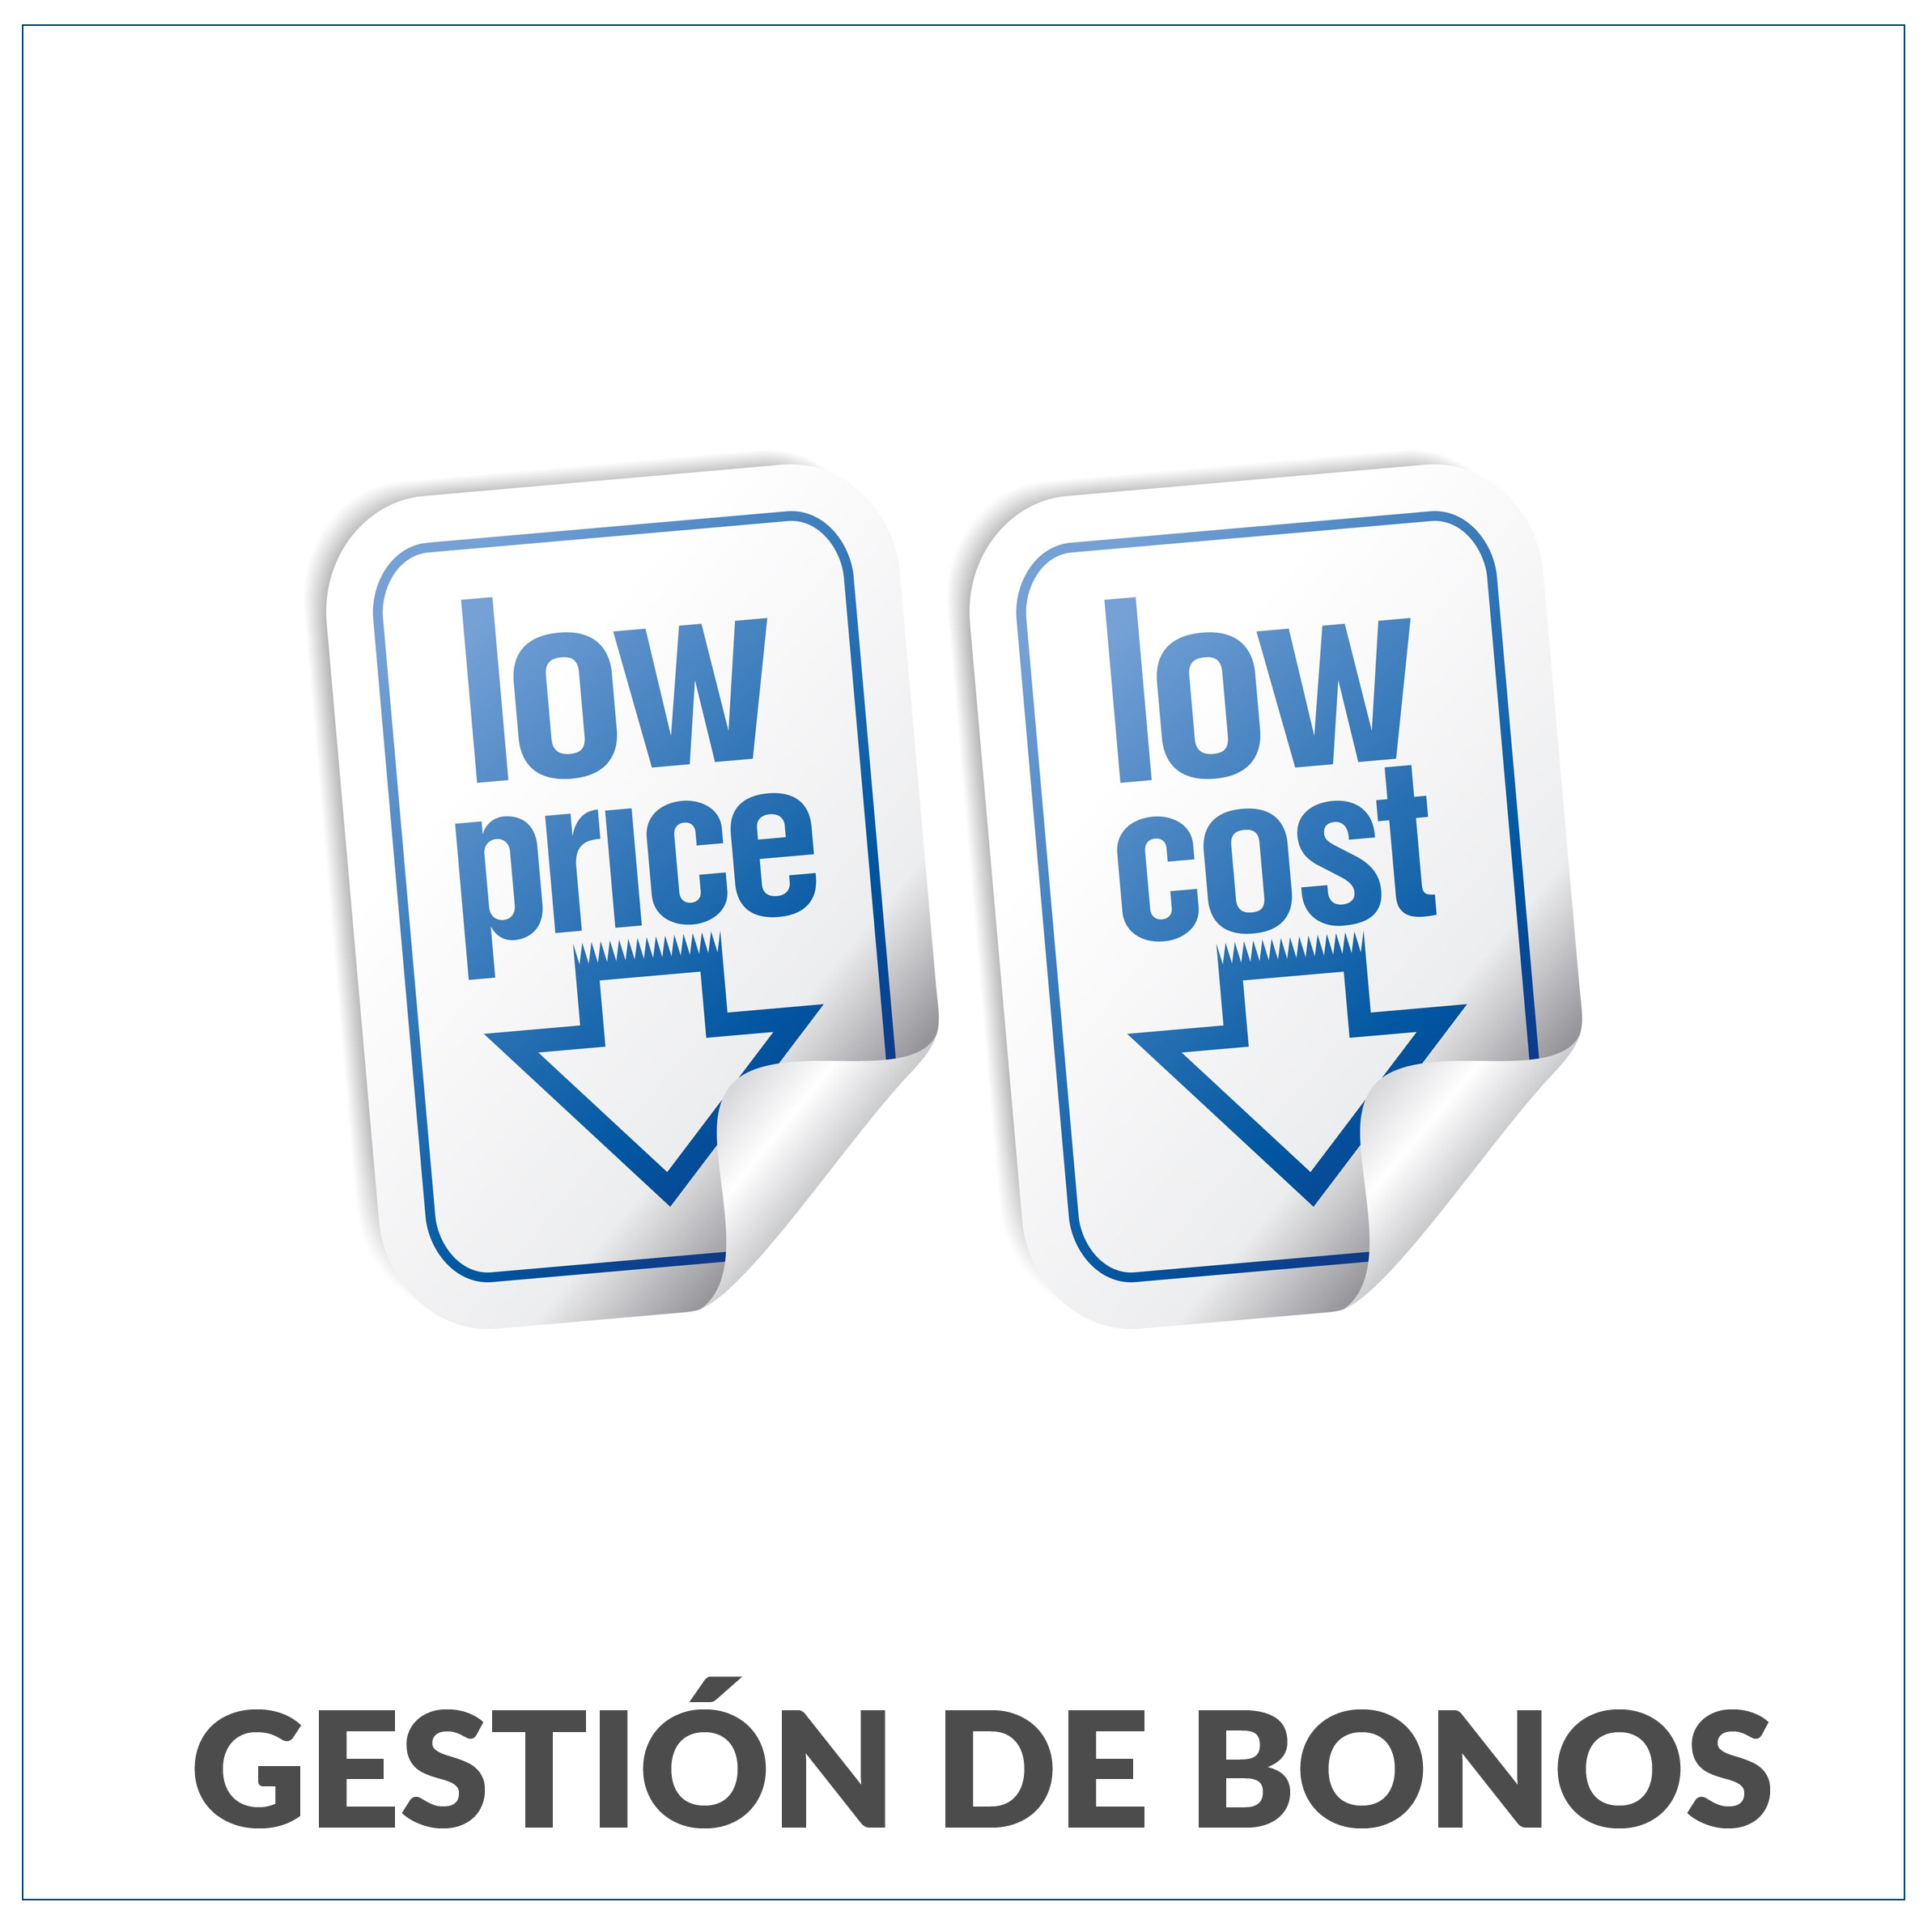 gestion-de-bonos-clinicas